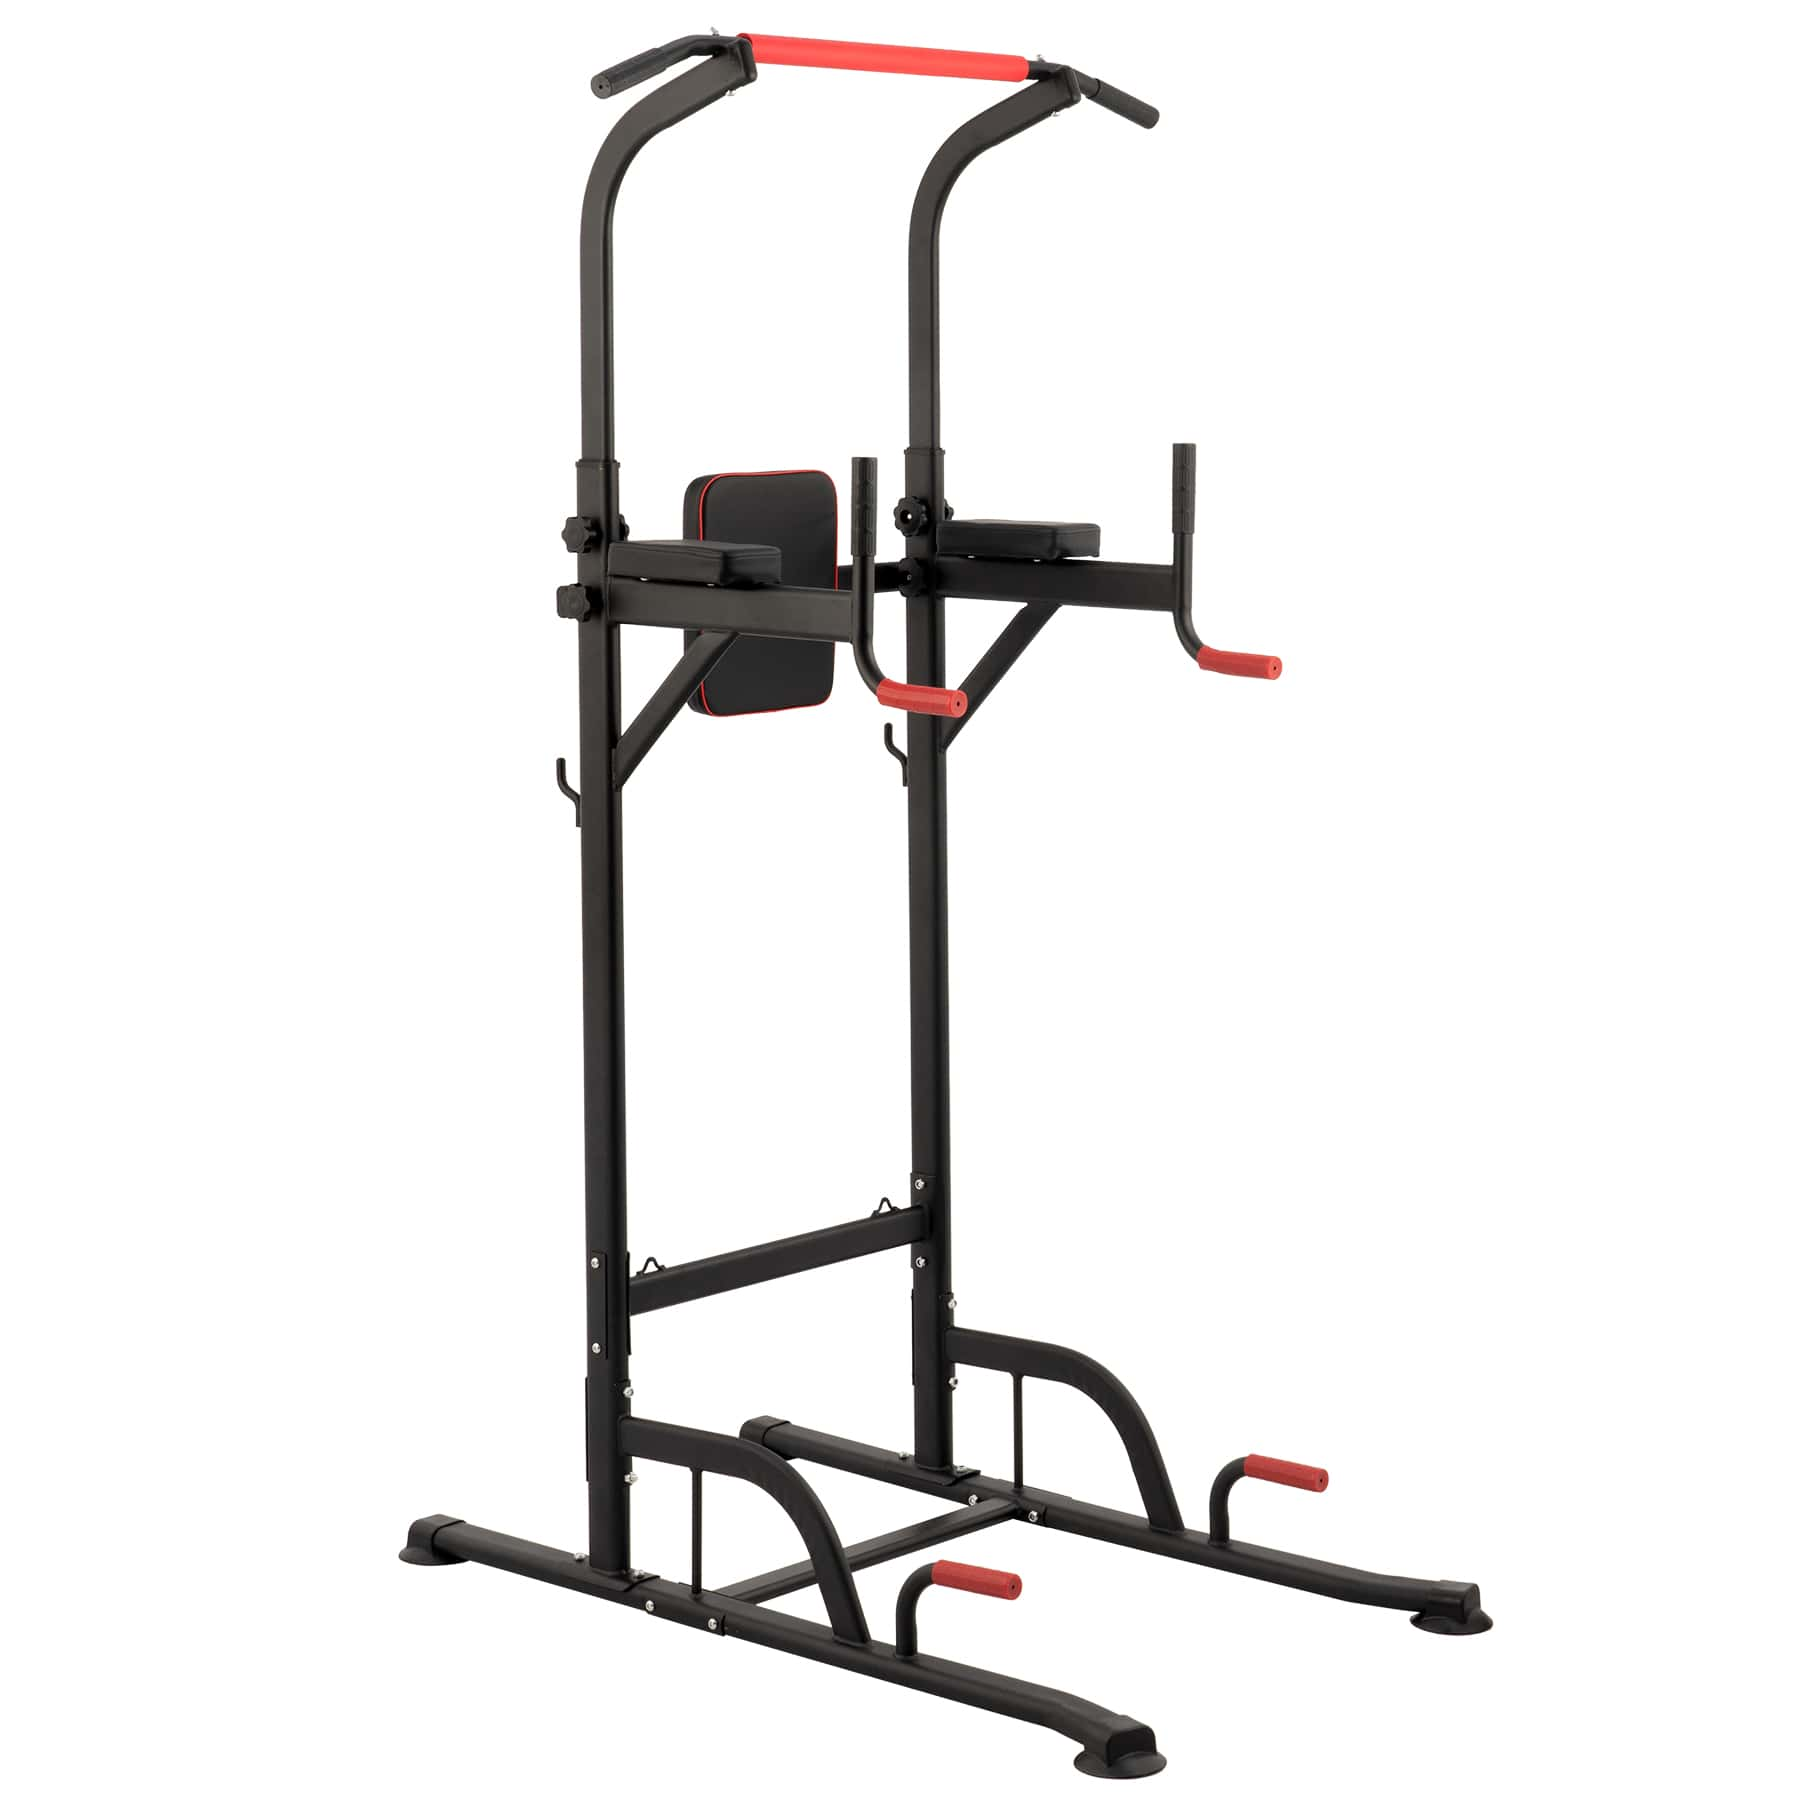 pull up bar Home Gym Exercise Equipment